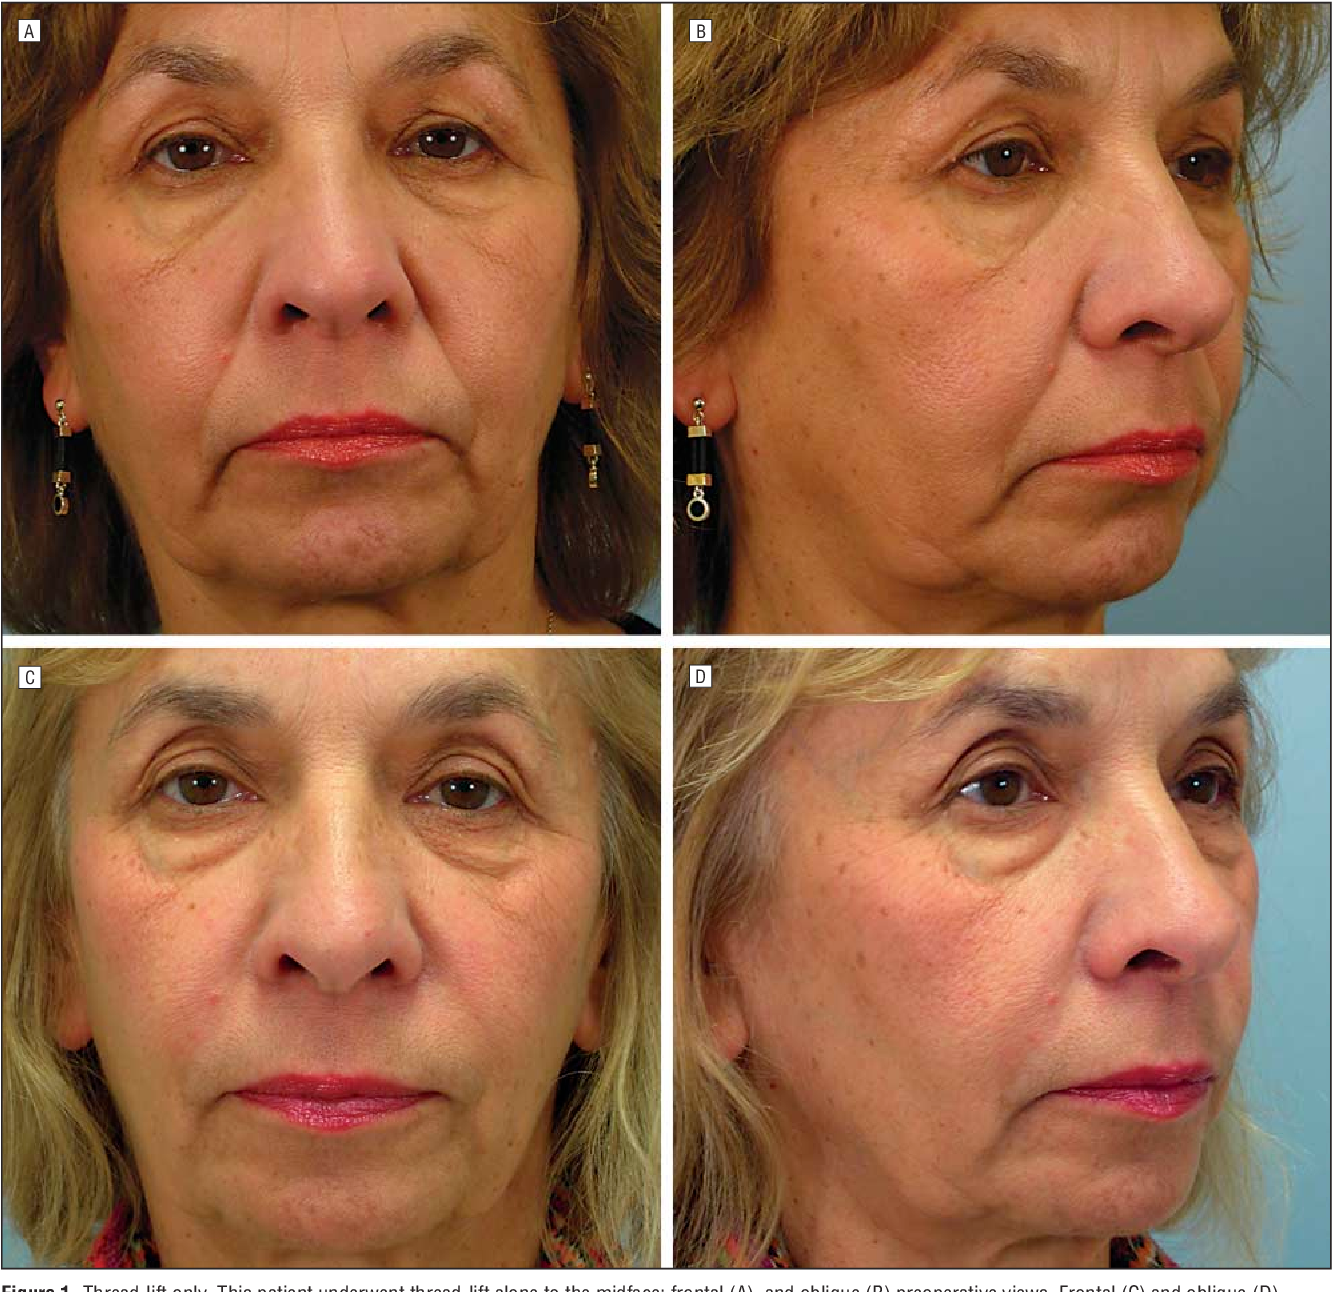 Thread-lift for facial rejuvenation: assessment of long-term results